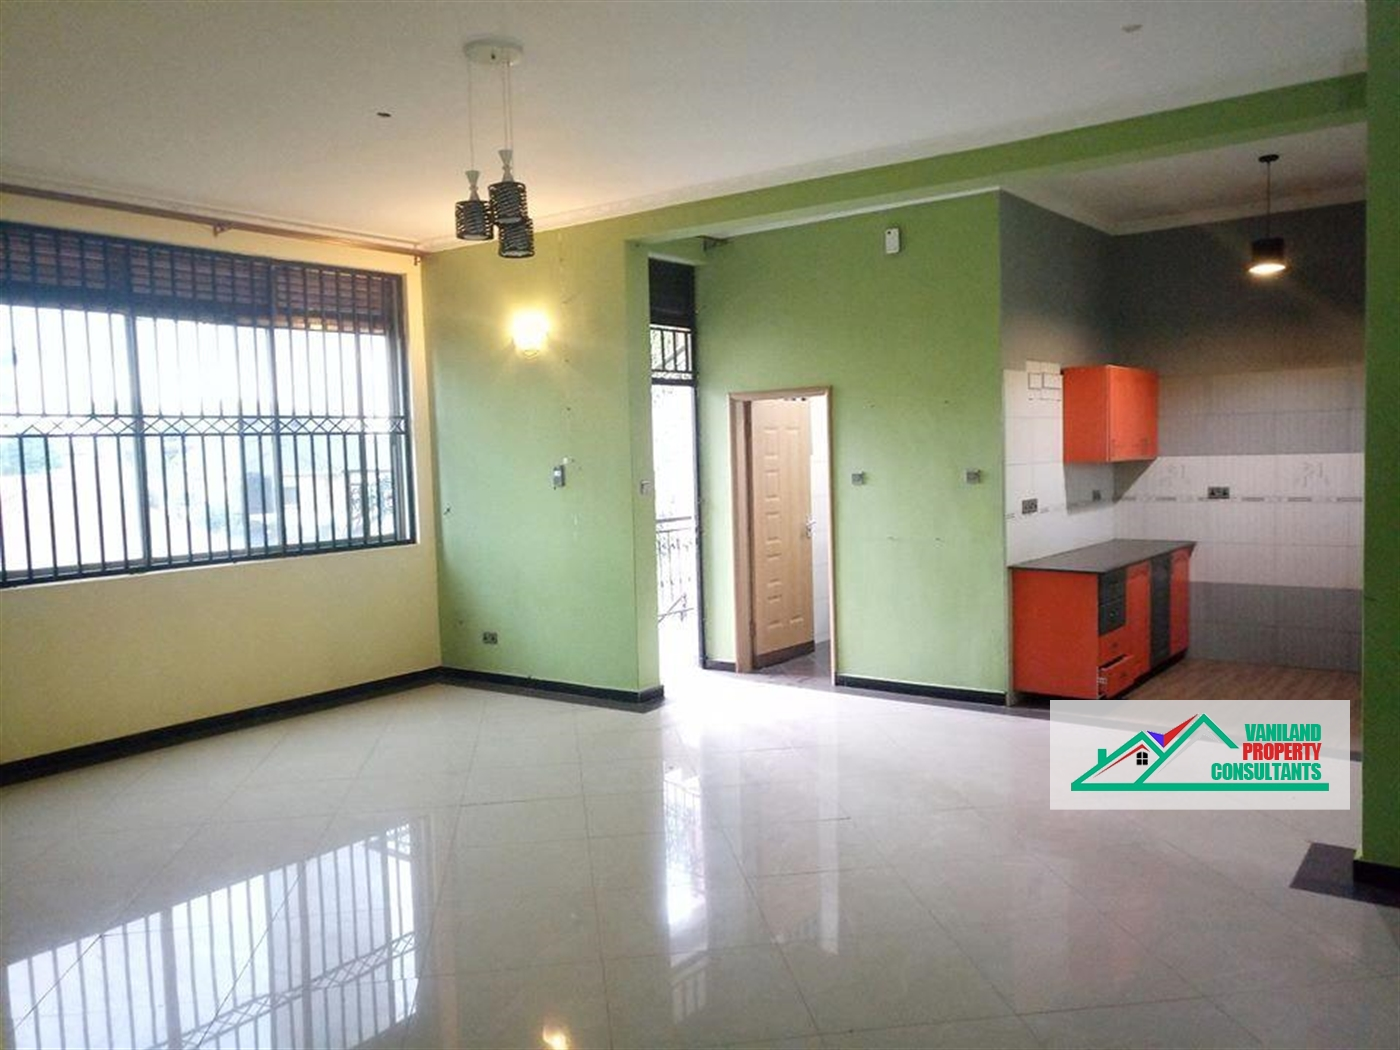 Apartment for rent in Buwaate Wakiso